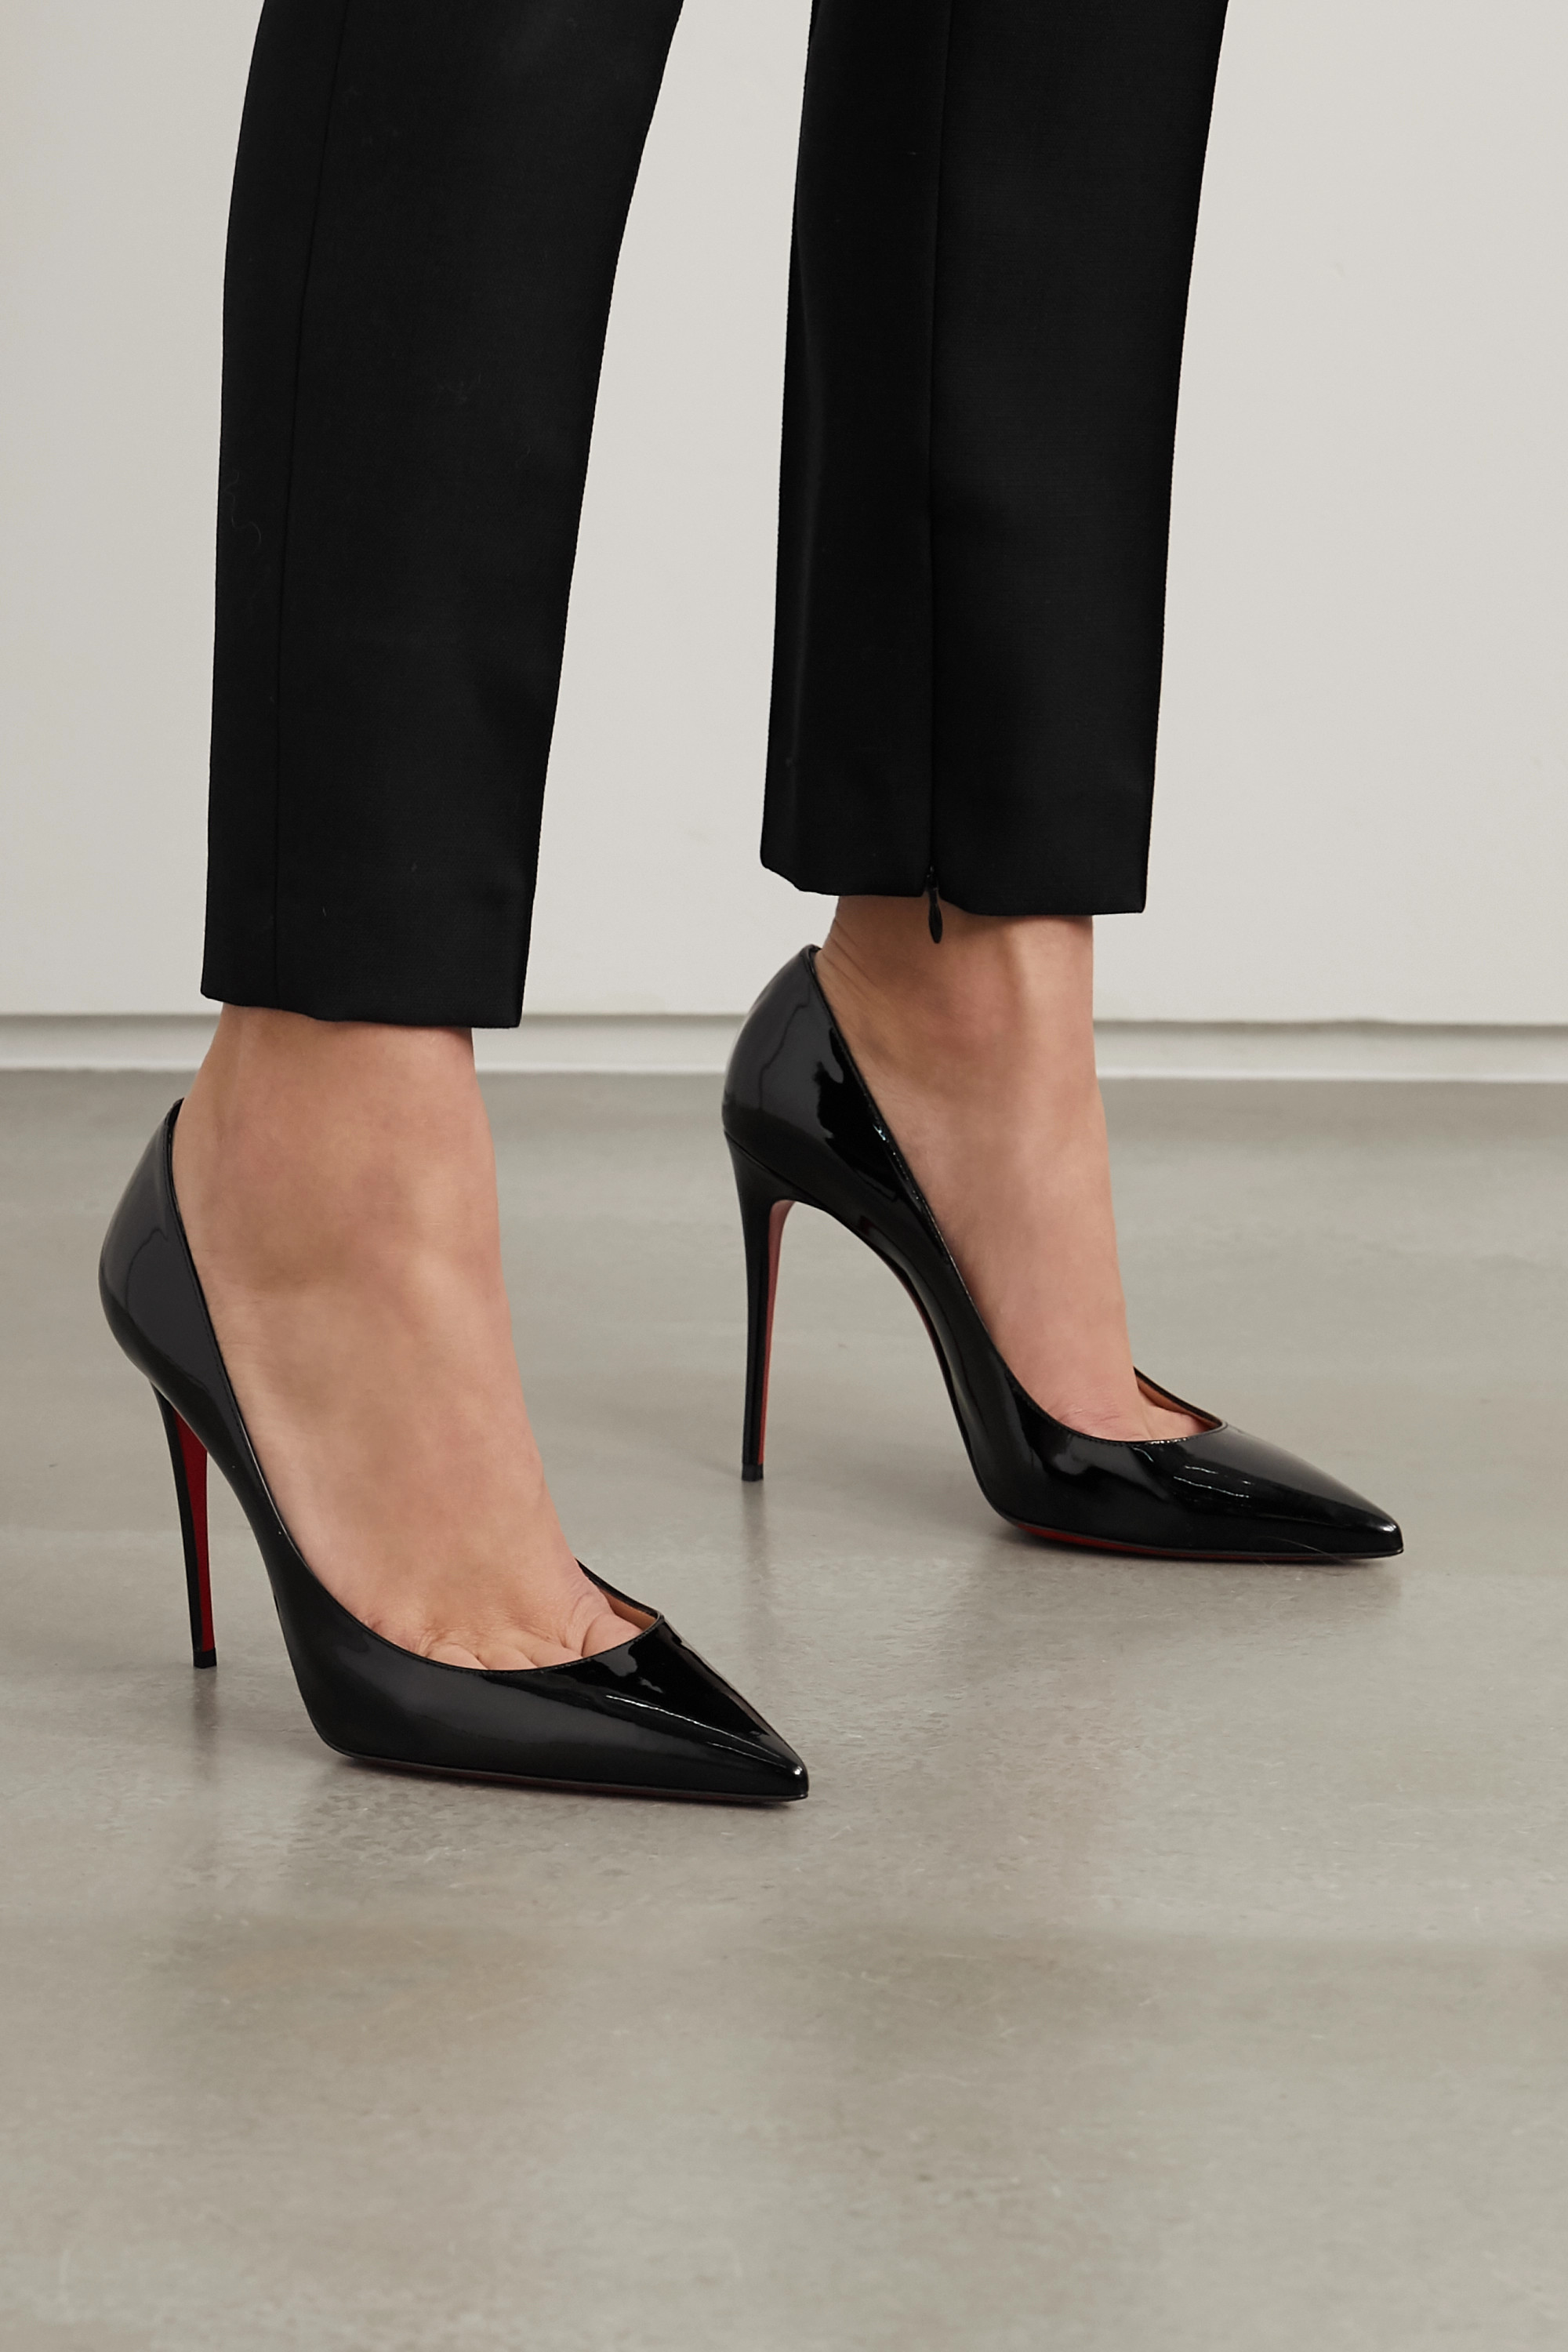 Christian Louboutin Kate 100 patent-leather pumps